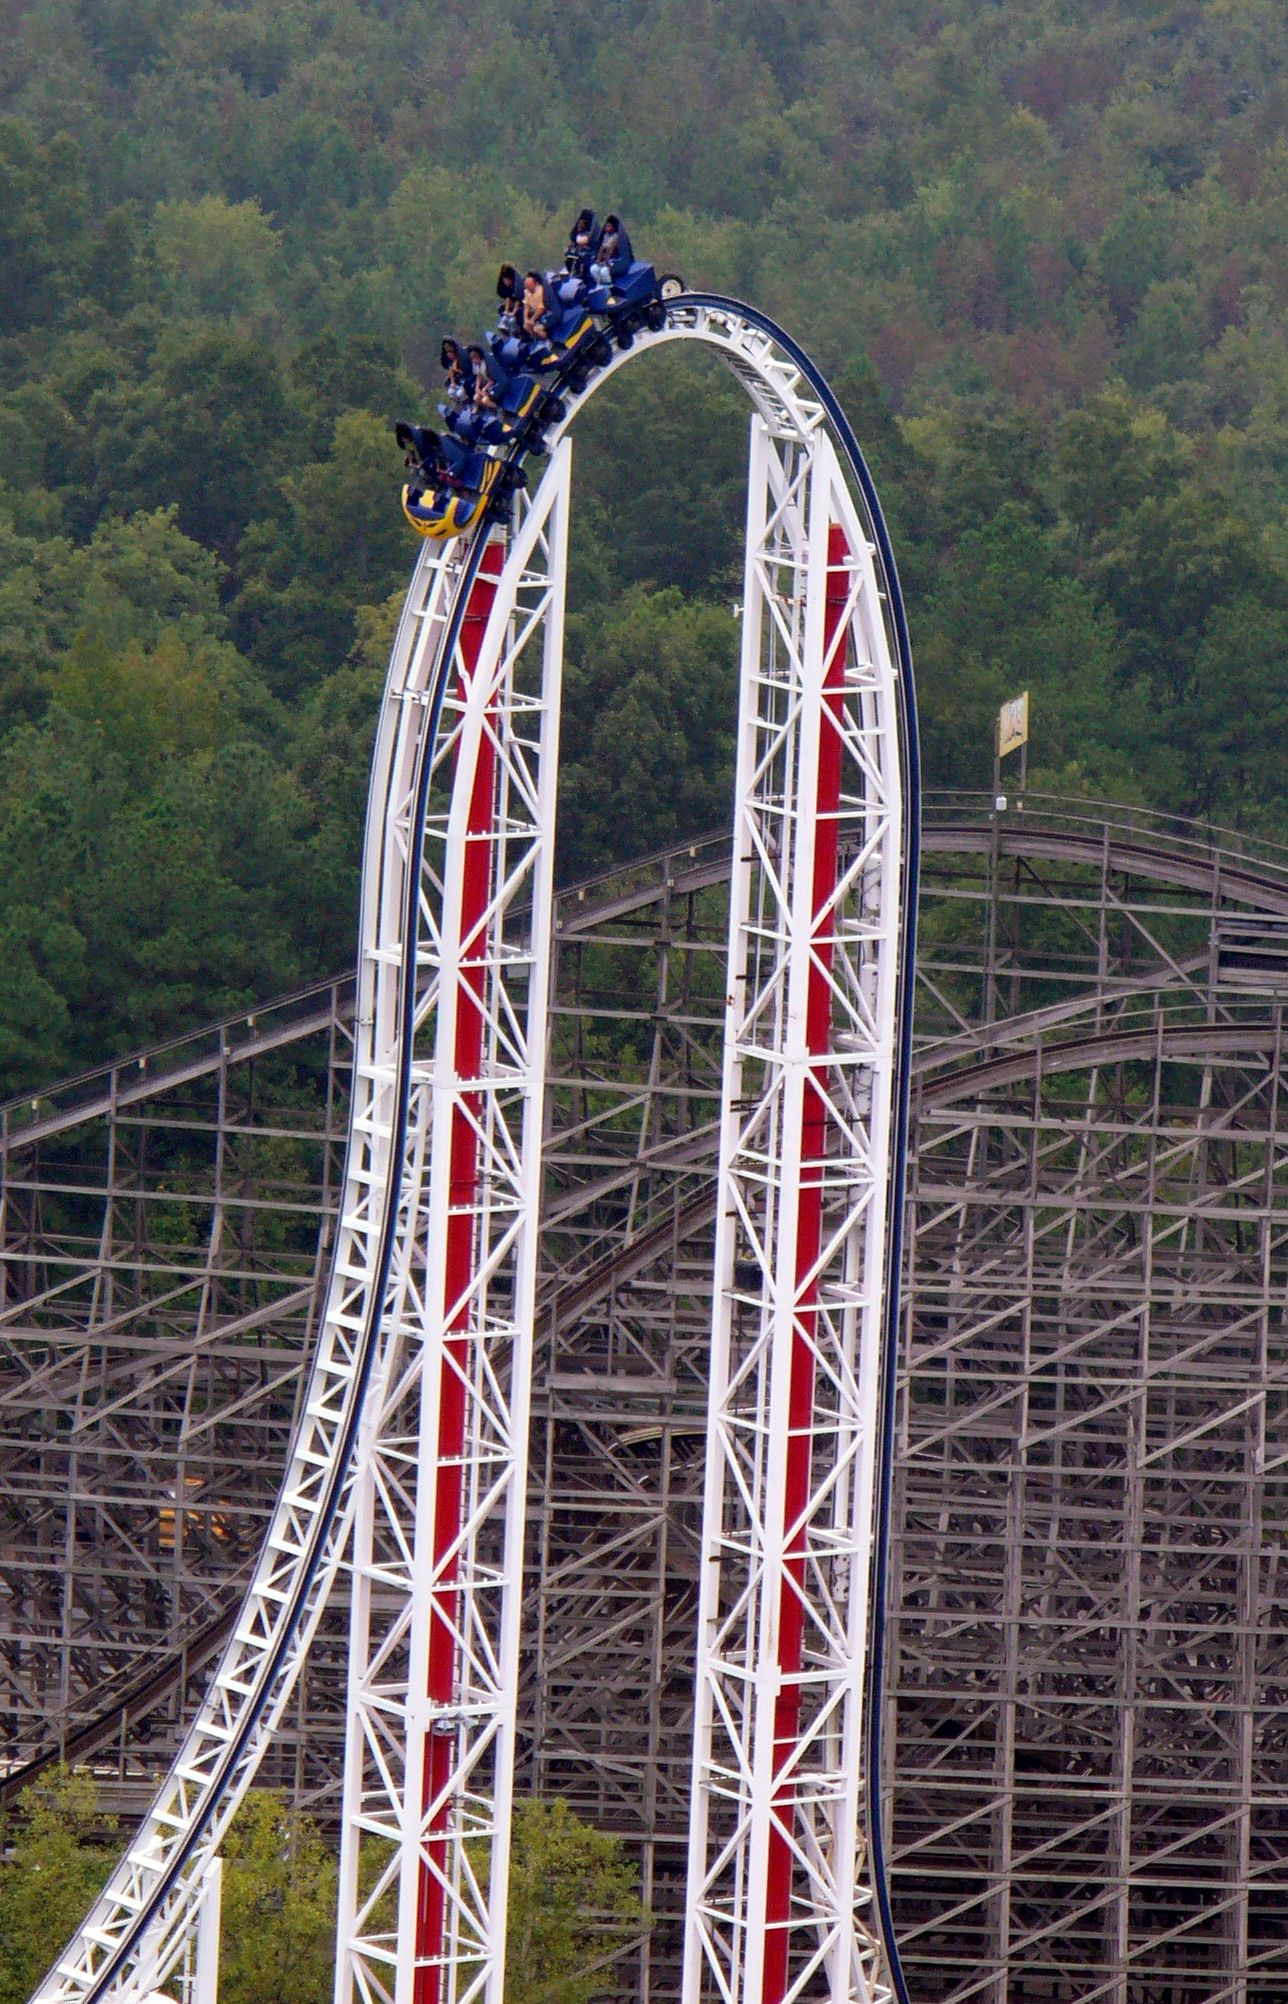 File Hypersonic Jpg Coasterpedia The Roller Coaster Wiki Roller Coaster Roller Coaster Ride Theme Parks Rides